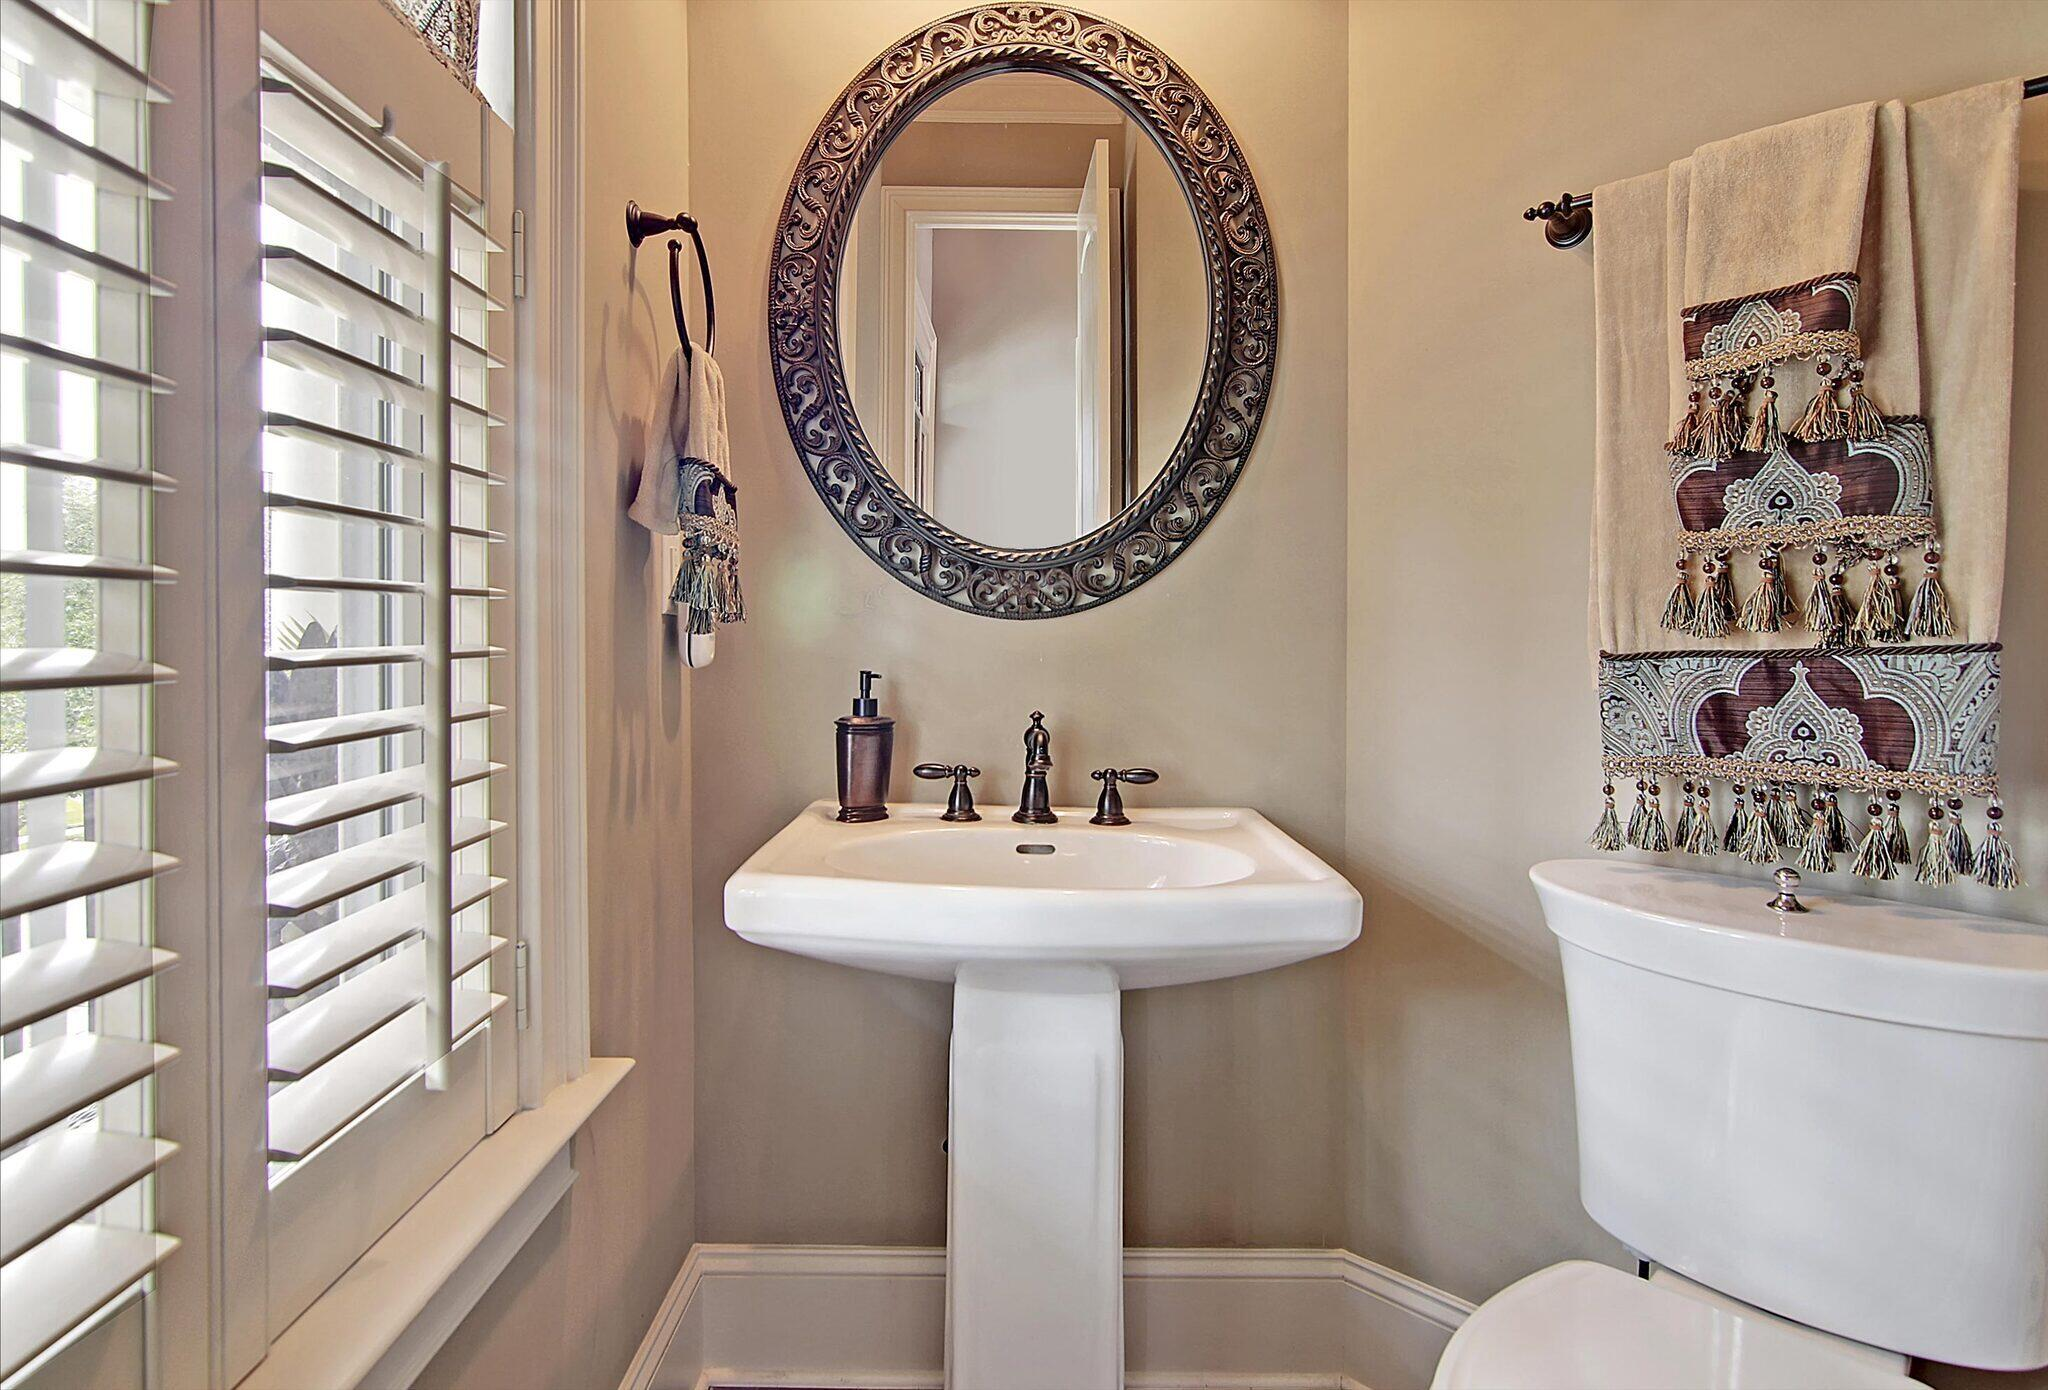 Rivertowne On The Wando Homes For Sale - 2128 Sandy Point, Mount Pleasant, SC - 13